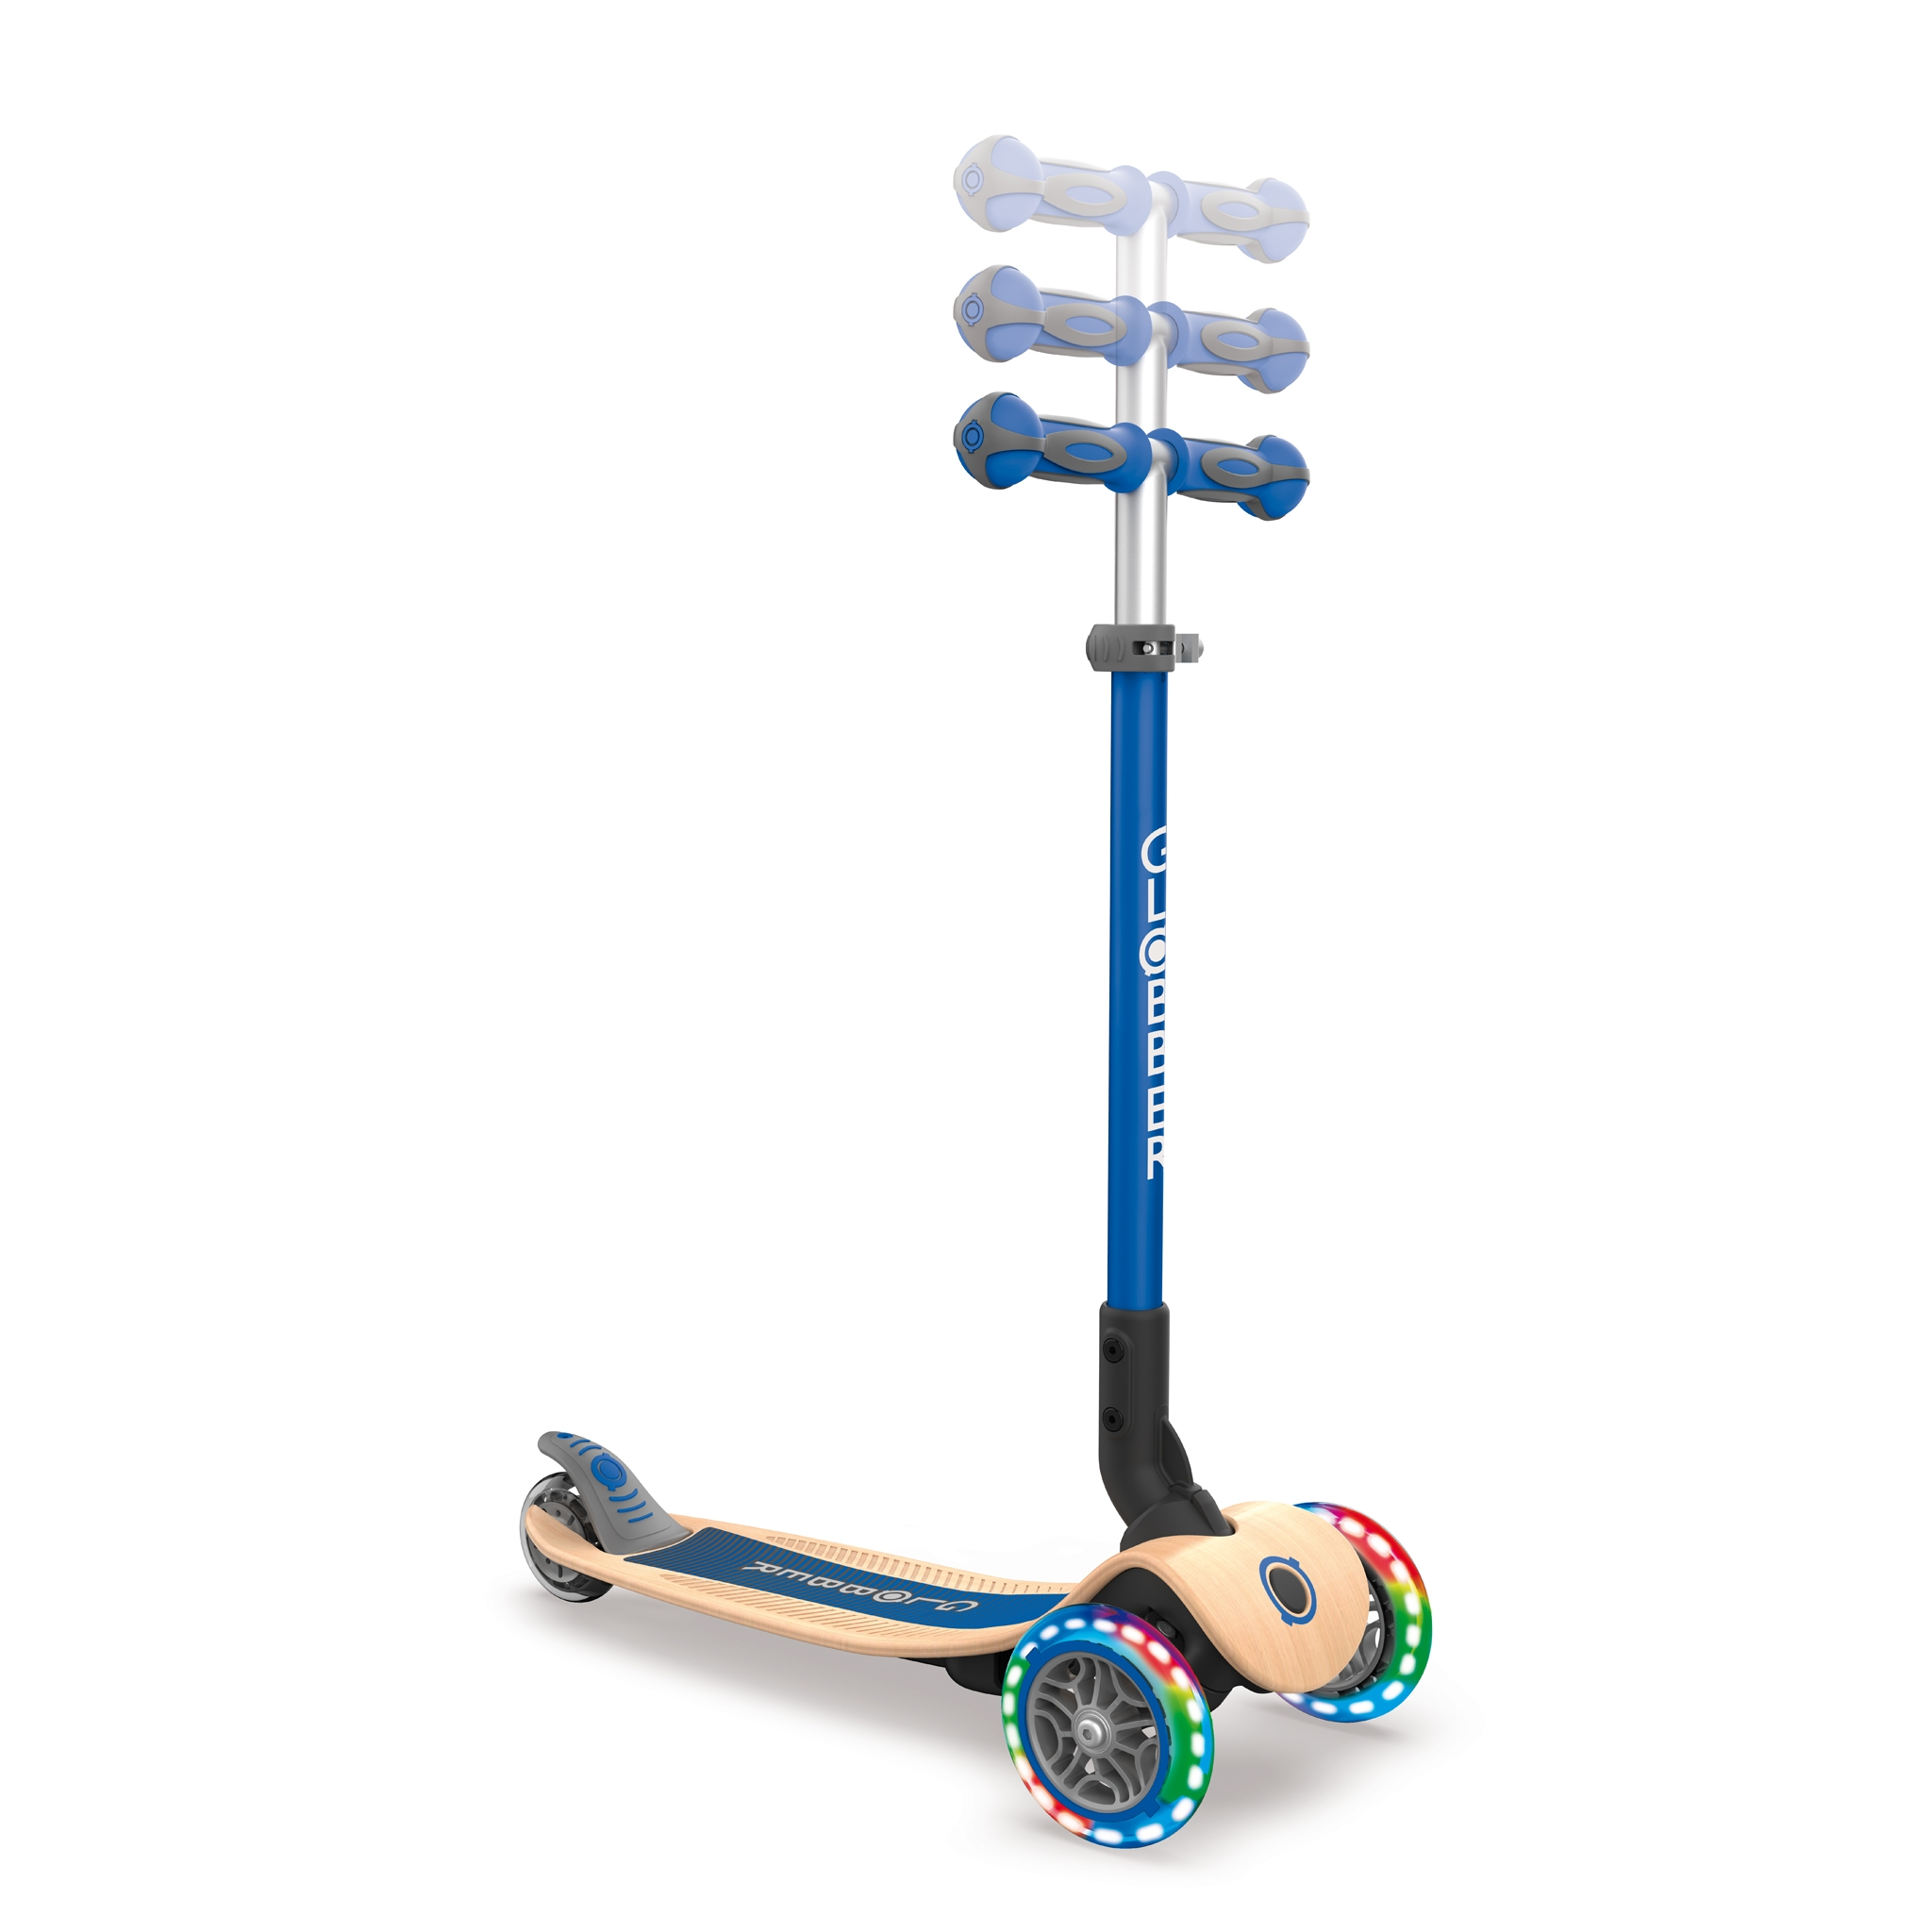 PRIMO-FOLDABLE-WOOD-LIGHTS-3-wheel-foldable-light-up-scooter-with-wooden-scooter-deck-and-3-height-adjustable-T-bar_navy-blue